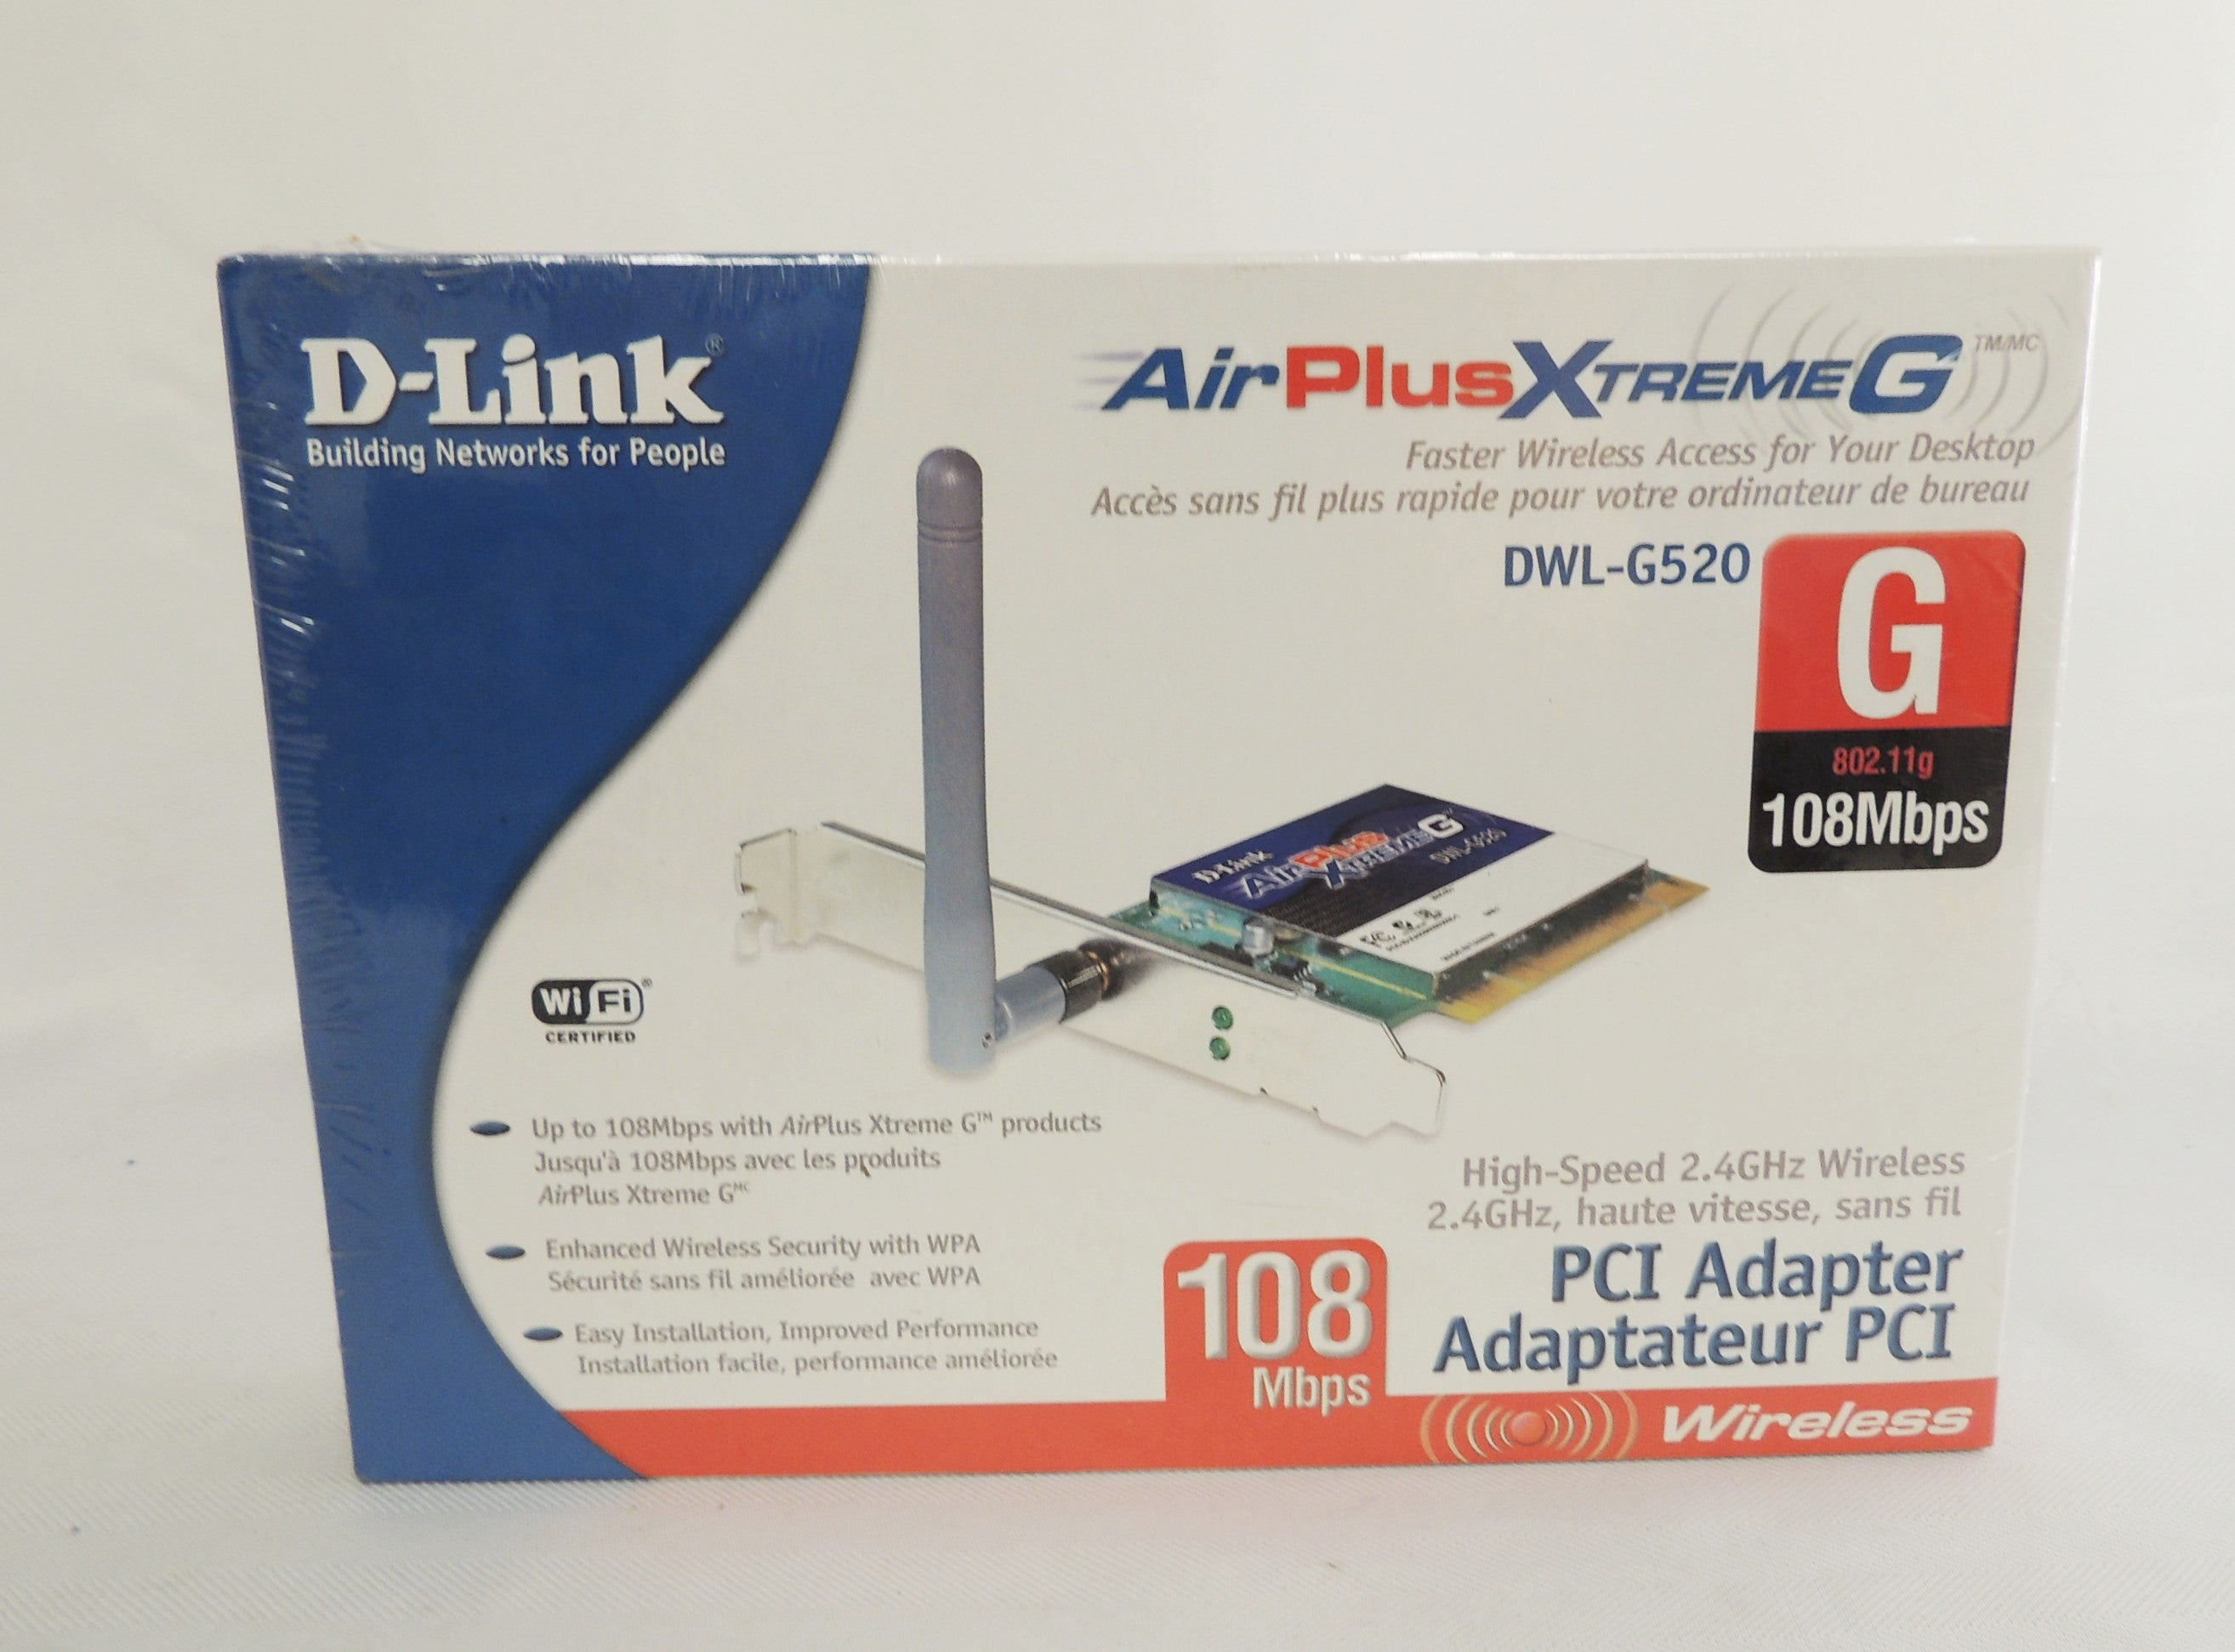 D-Link | airPlus ExtremeG | DWL-G520 Wireless Card without the antenna.